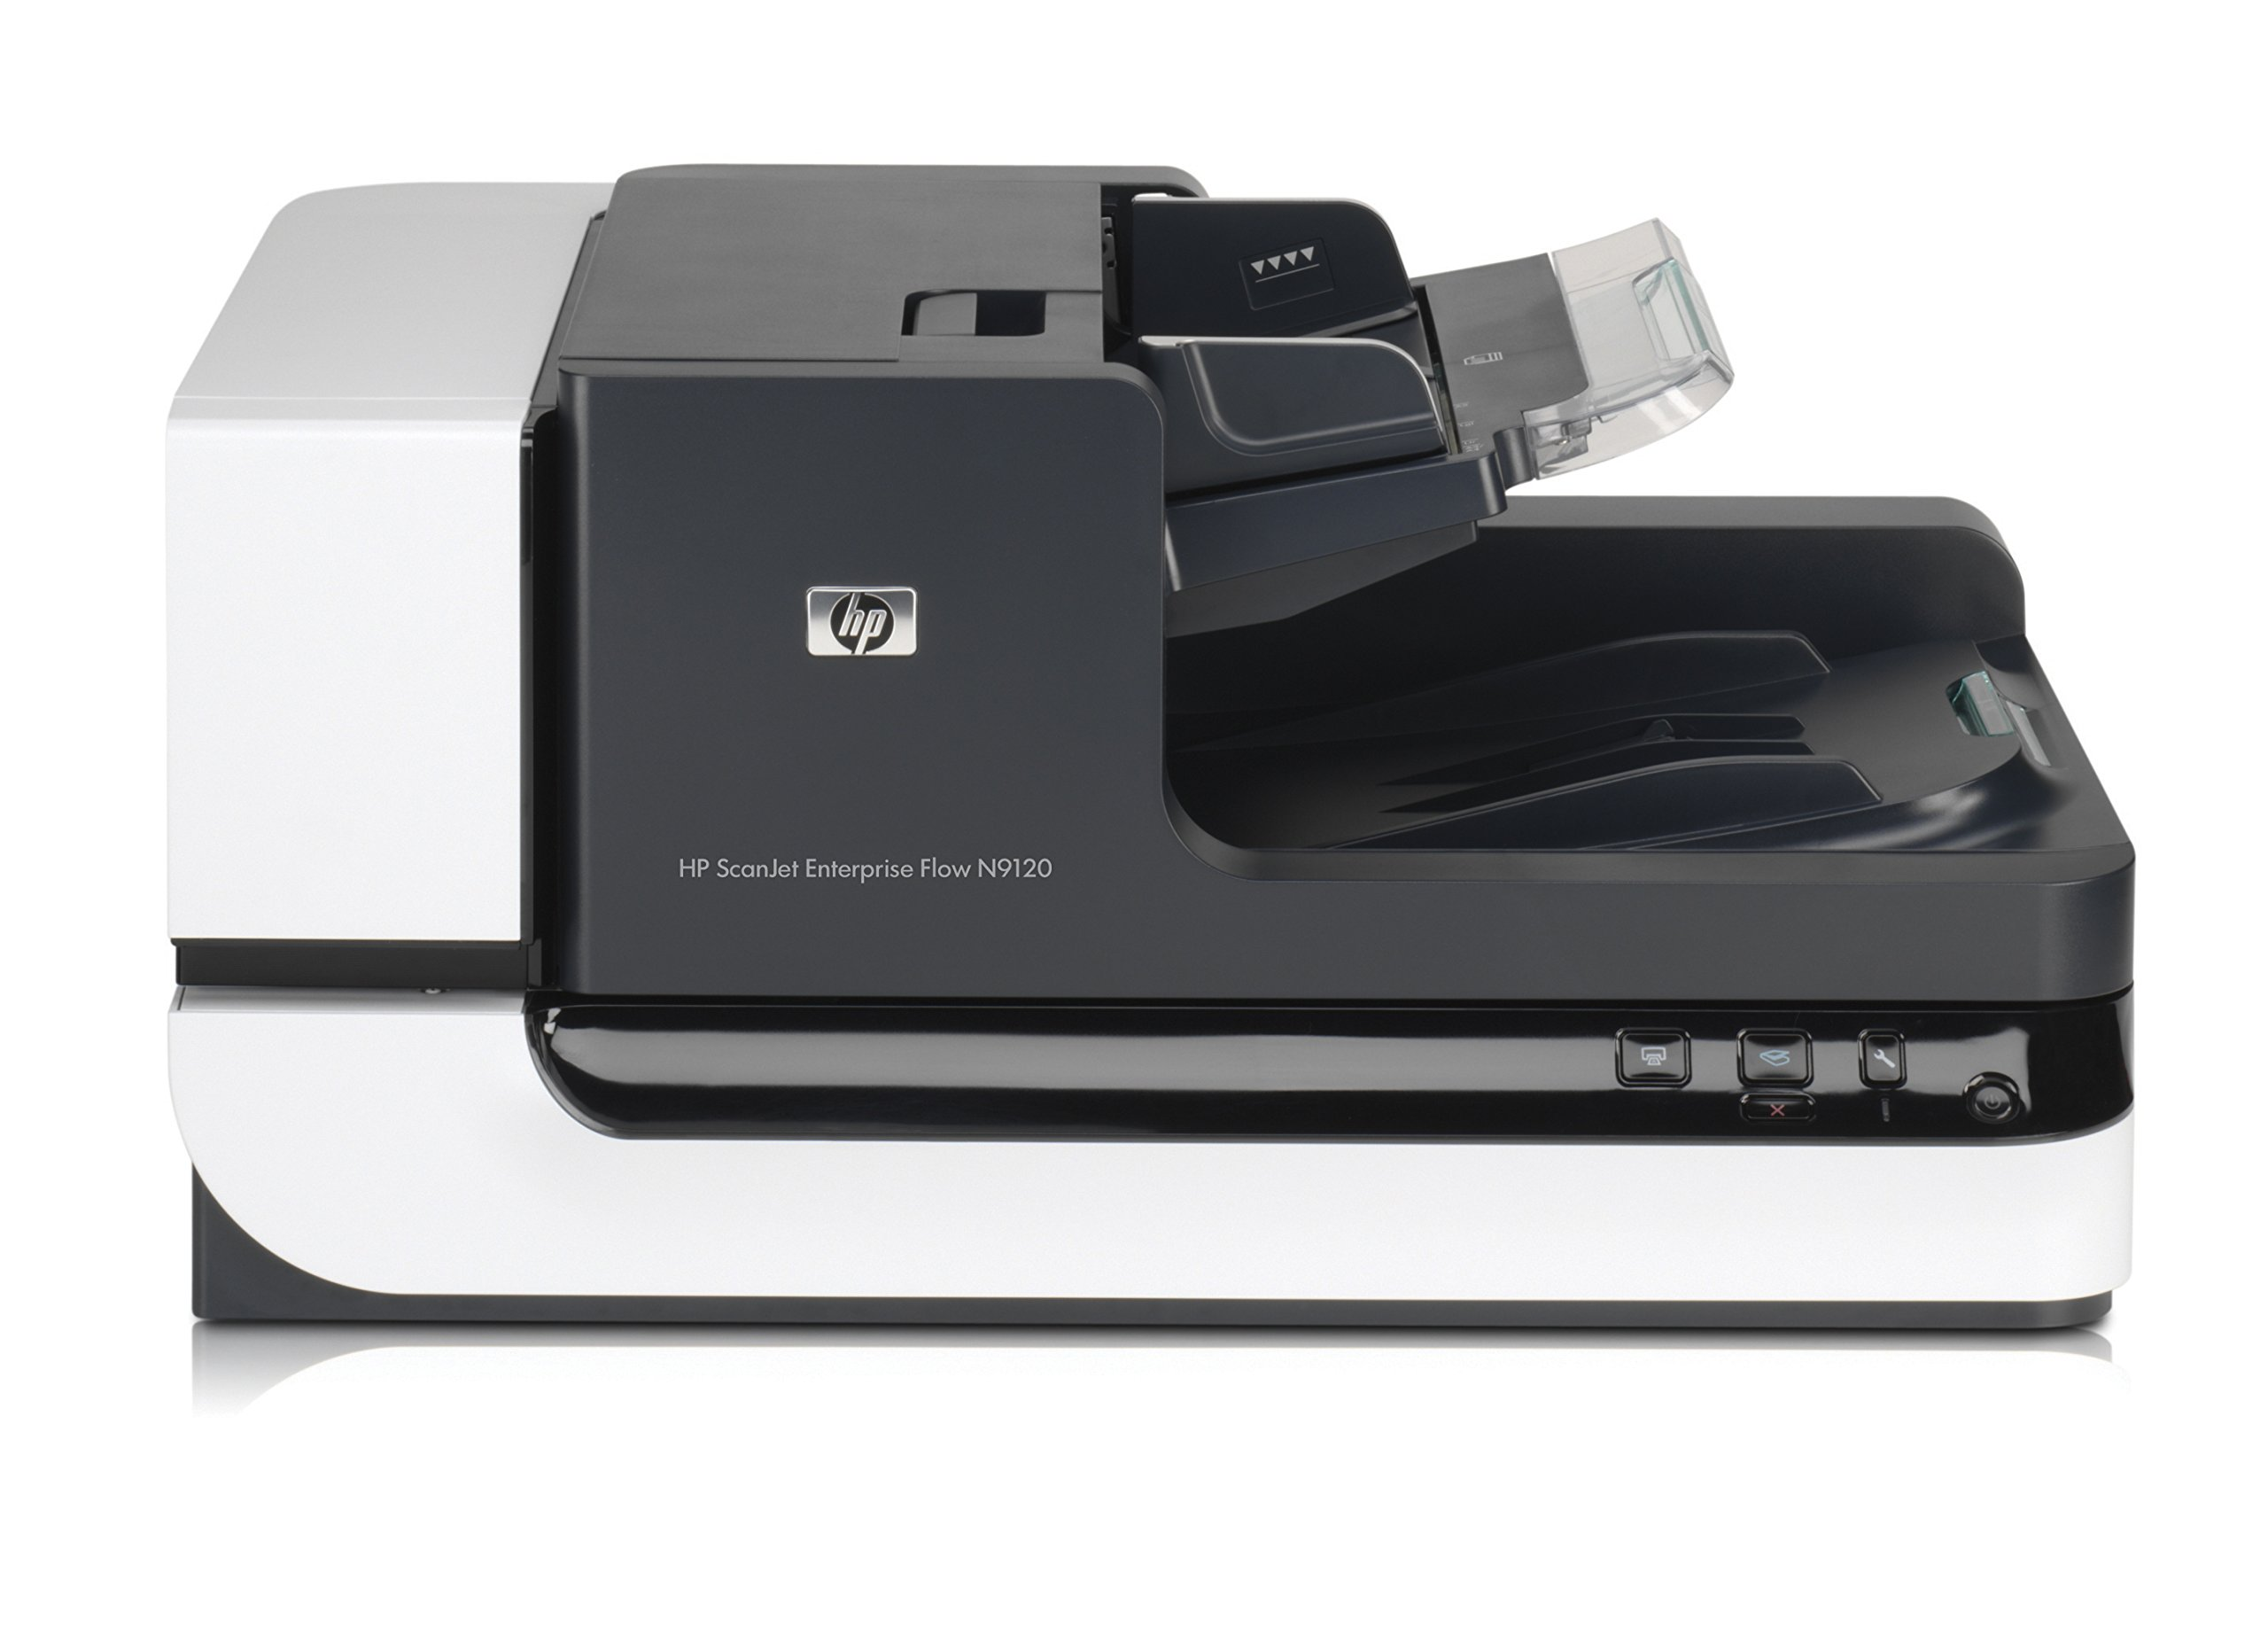 HP ScanJet Enterprise Flow N9120 Flatbed OCR Scanner